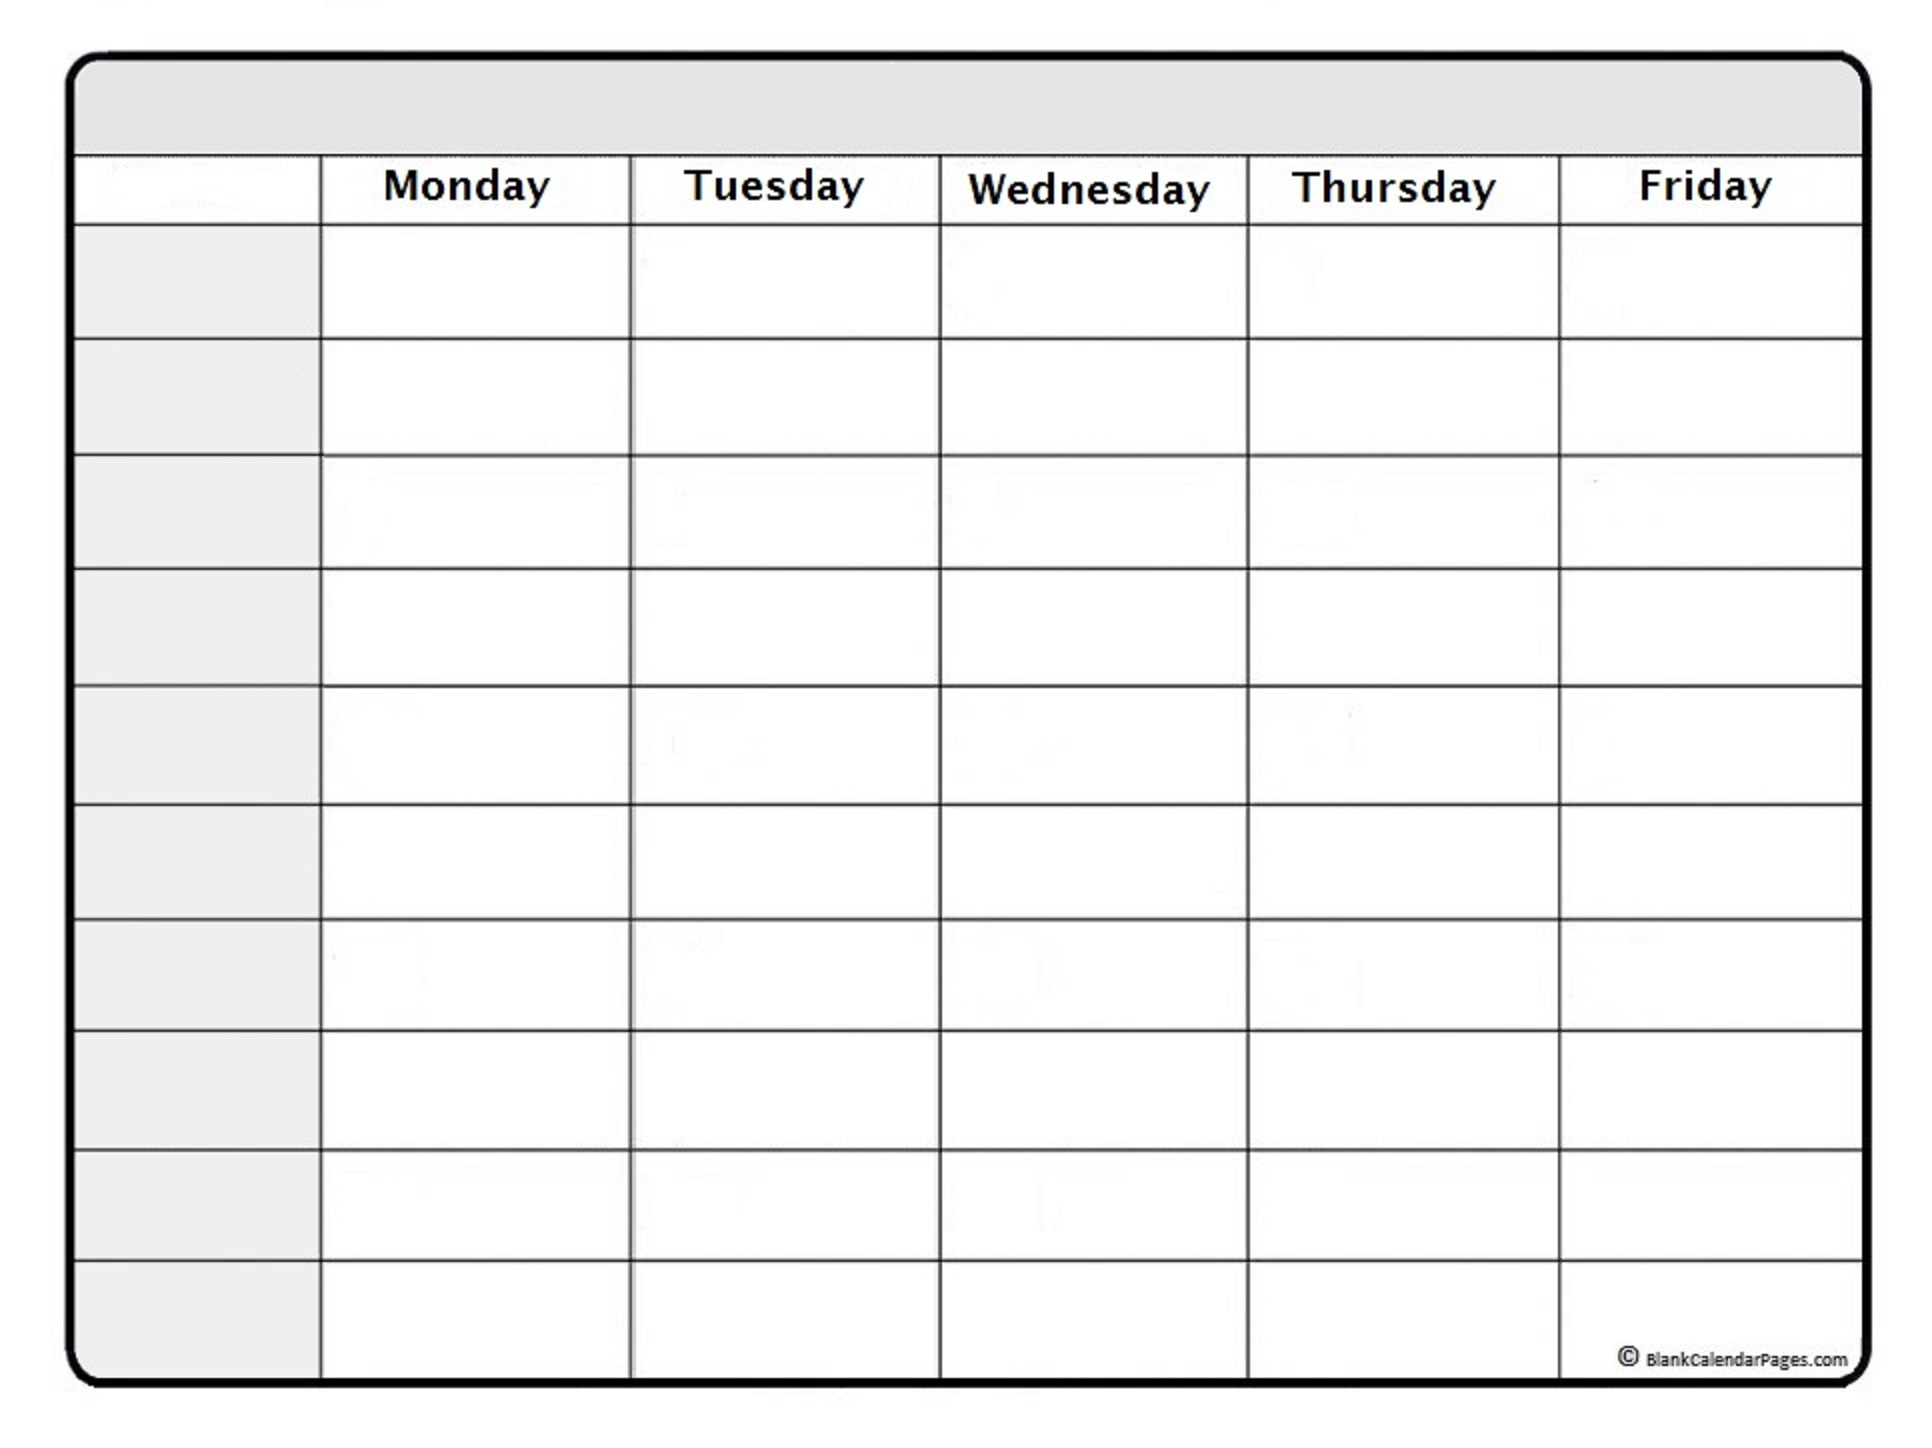 photo about Weekly Schedule Template Printable called September 2019 weekly calendar September 2019 weekly